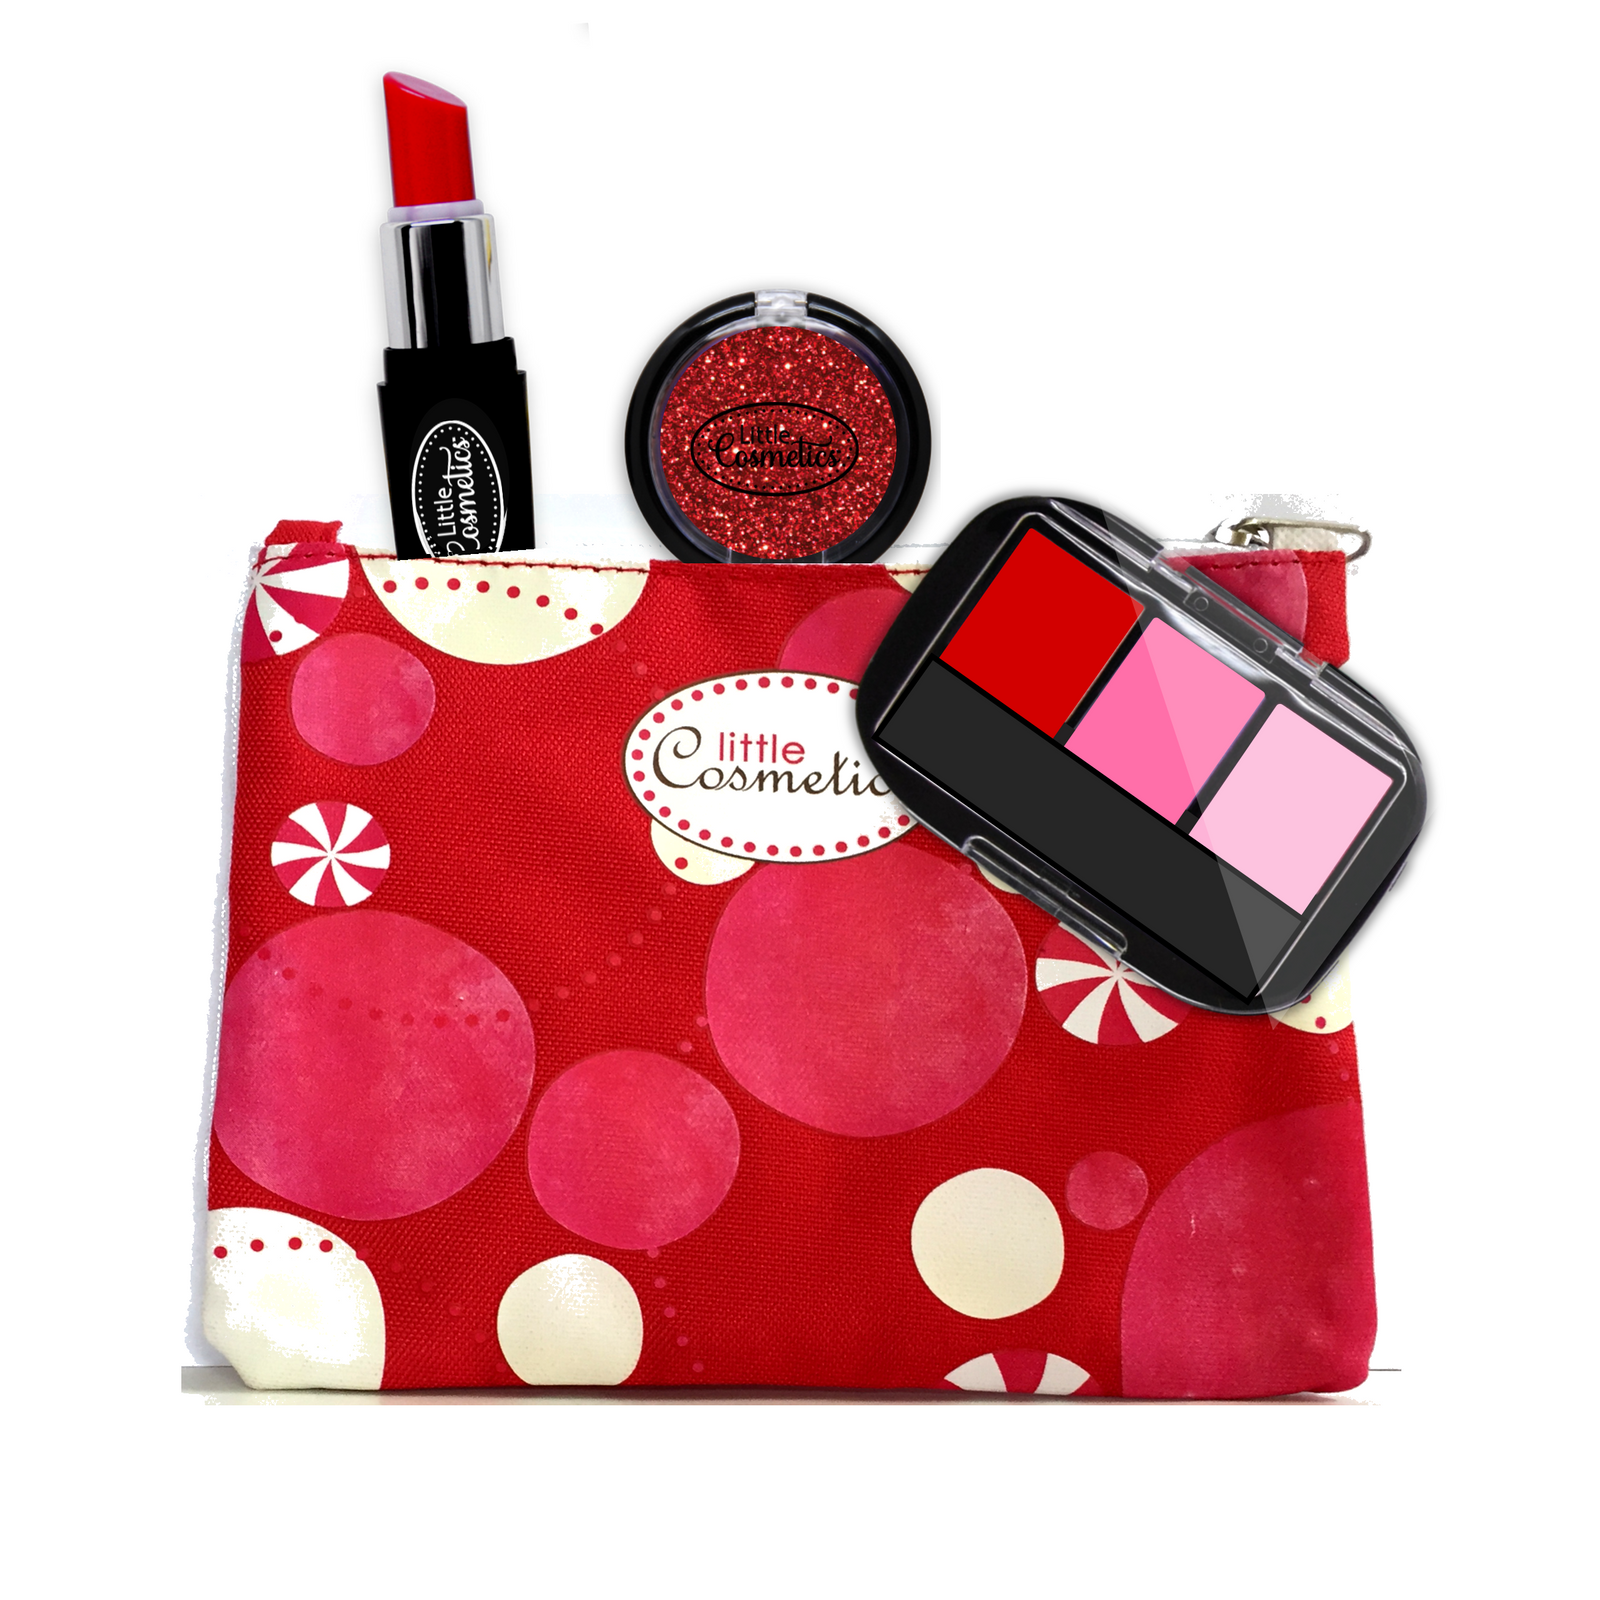 Little Cosmetics Pretend Makeup Ruby Playset